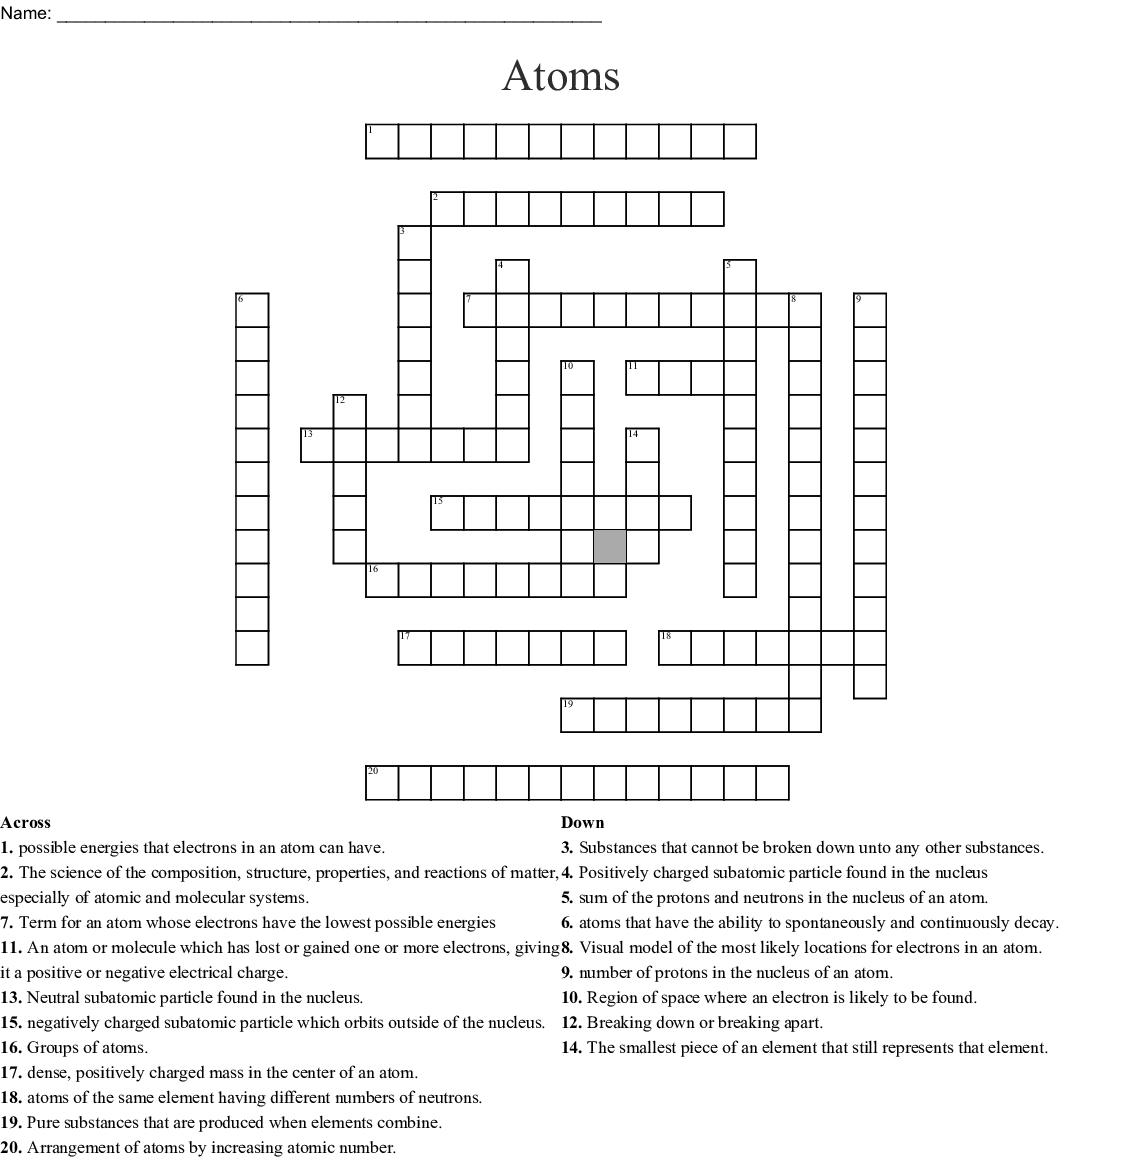 Atomic Structure Crossword Puzzle